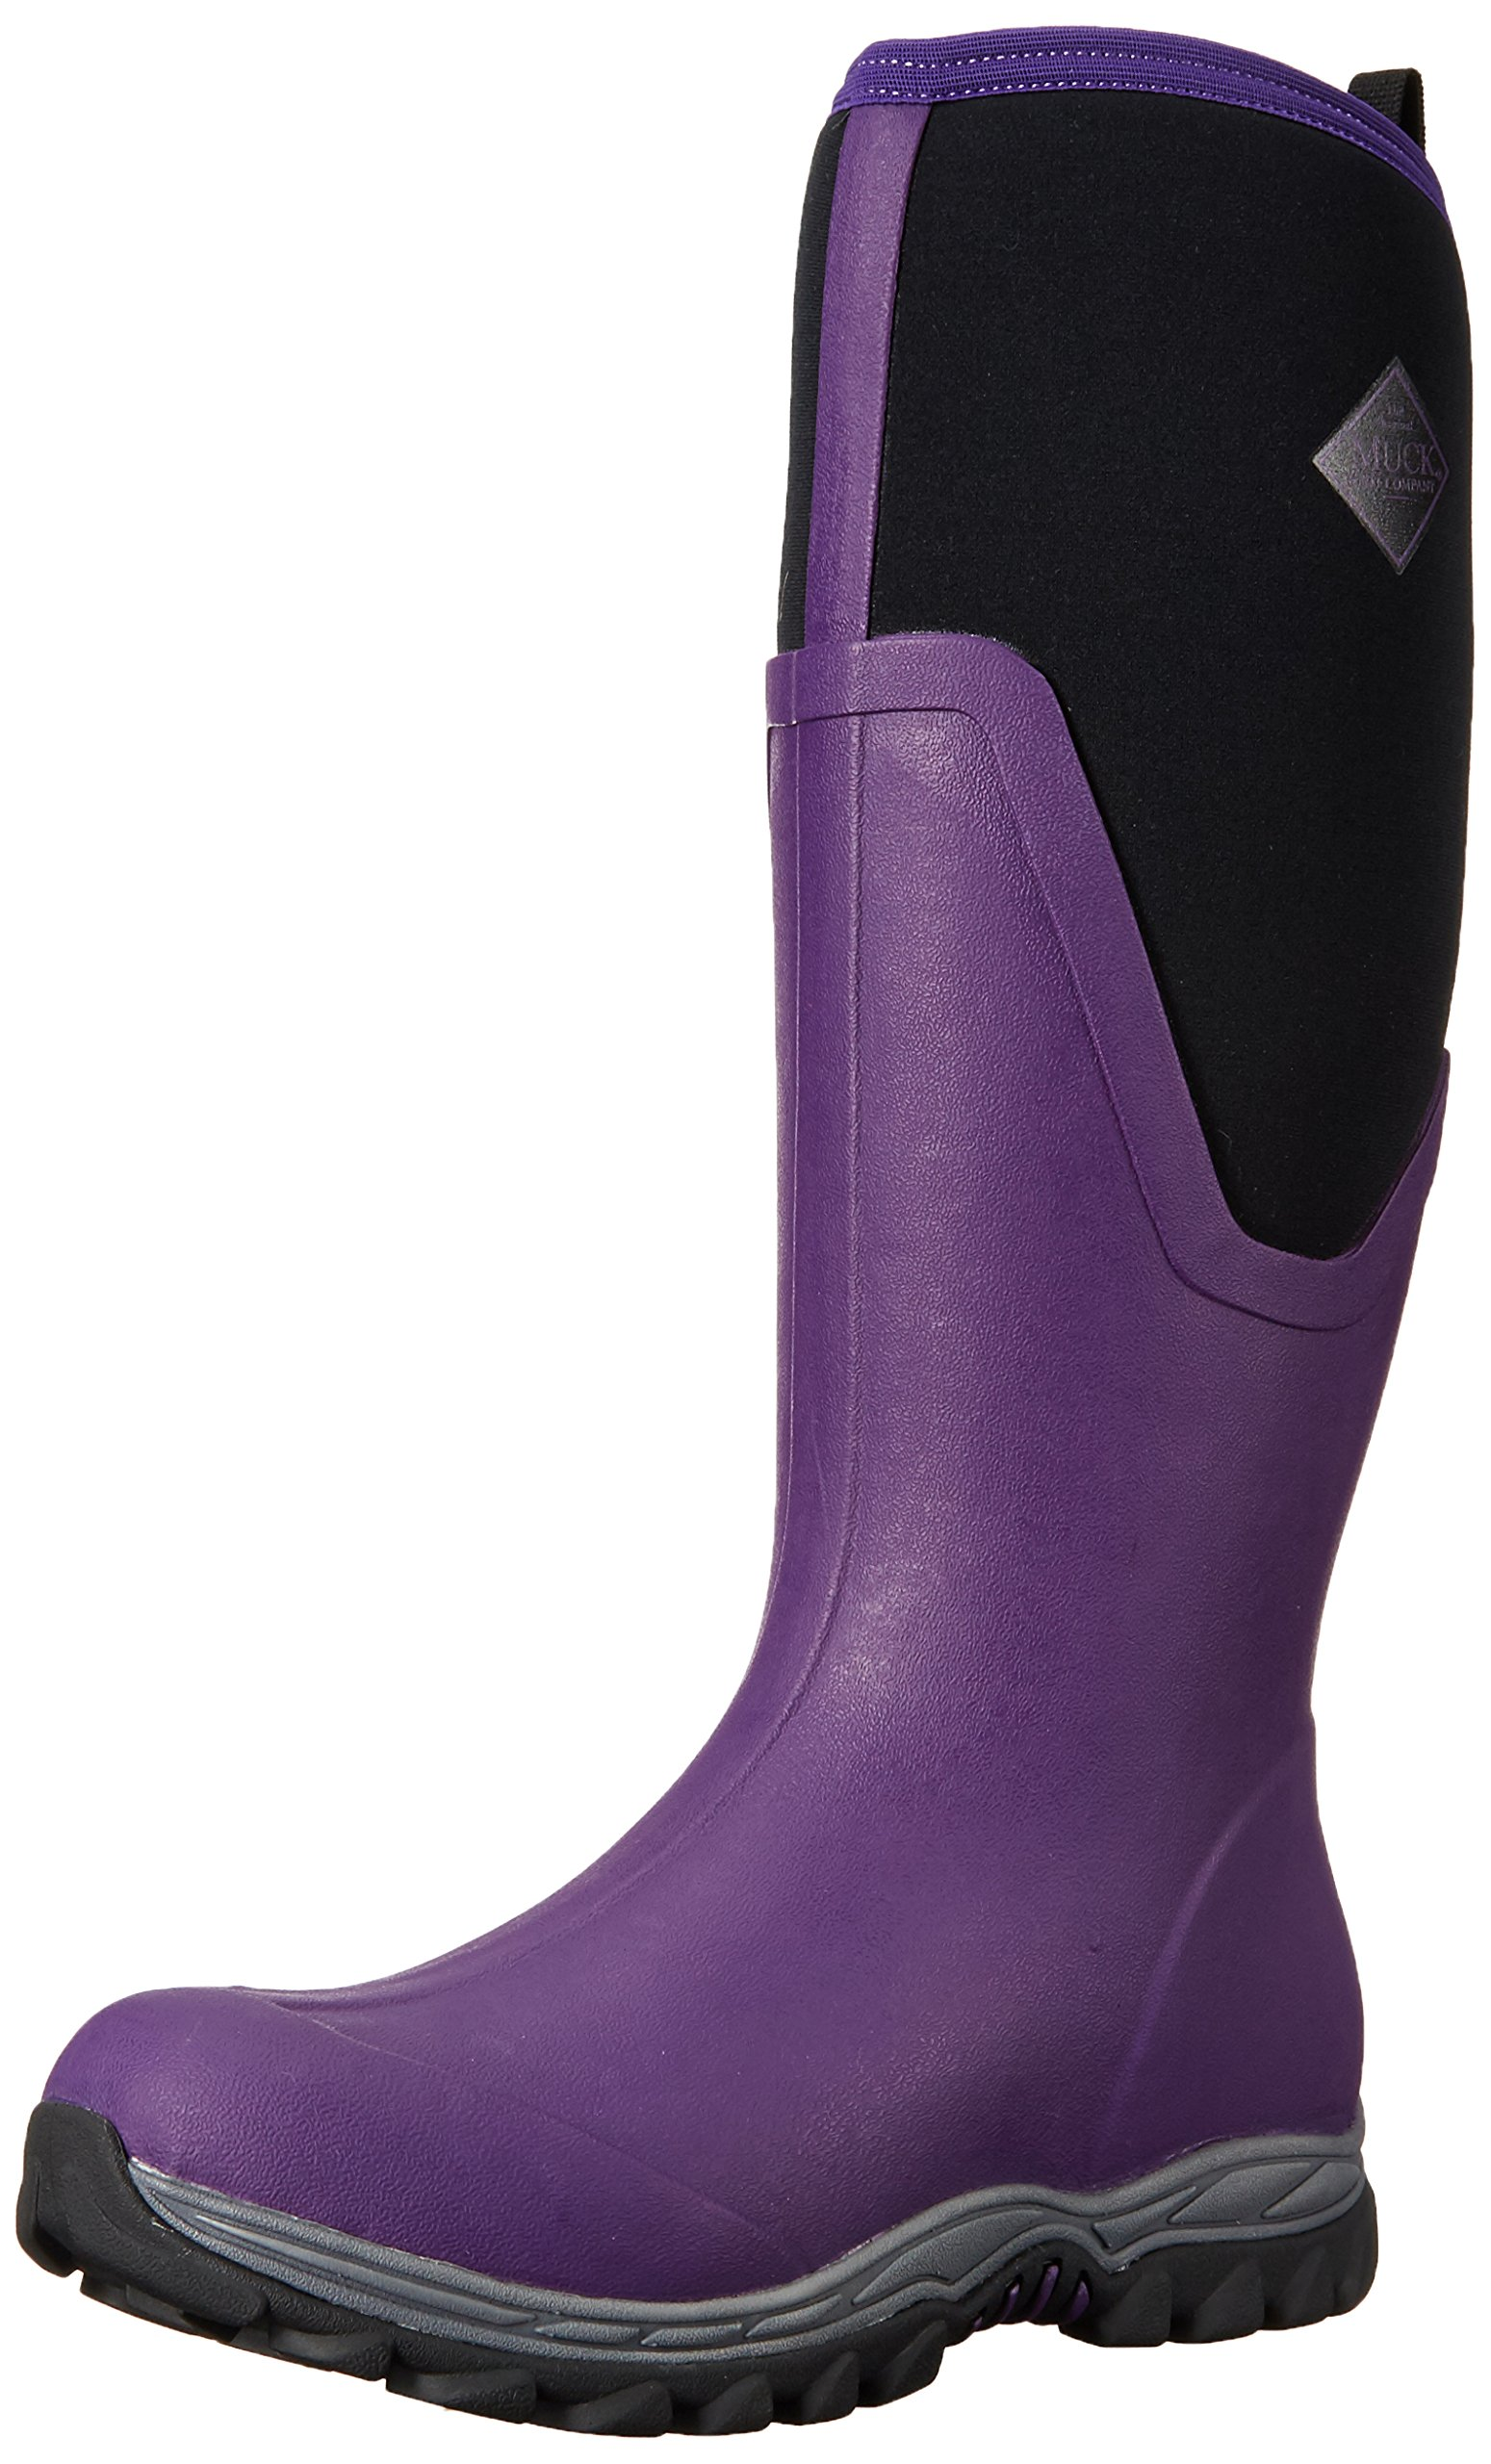 Best Rated in Equestrian Riding Boots & Helpful Customer